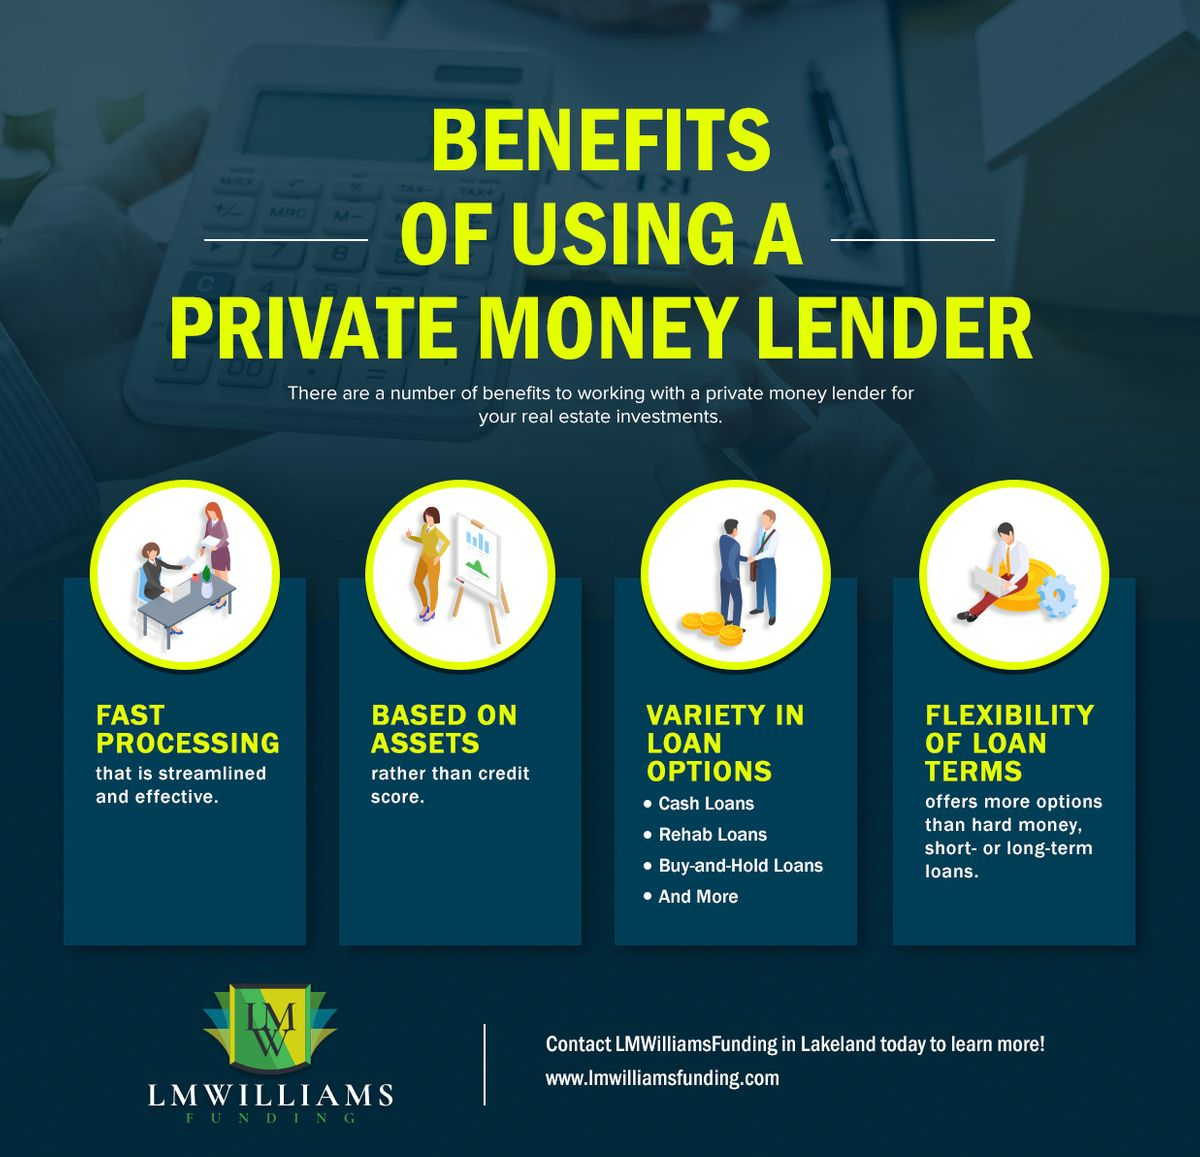 Benefits of Using a Private Money Lender.jpg